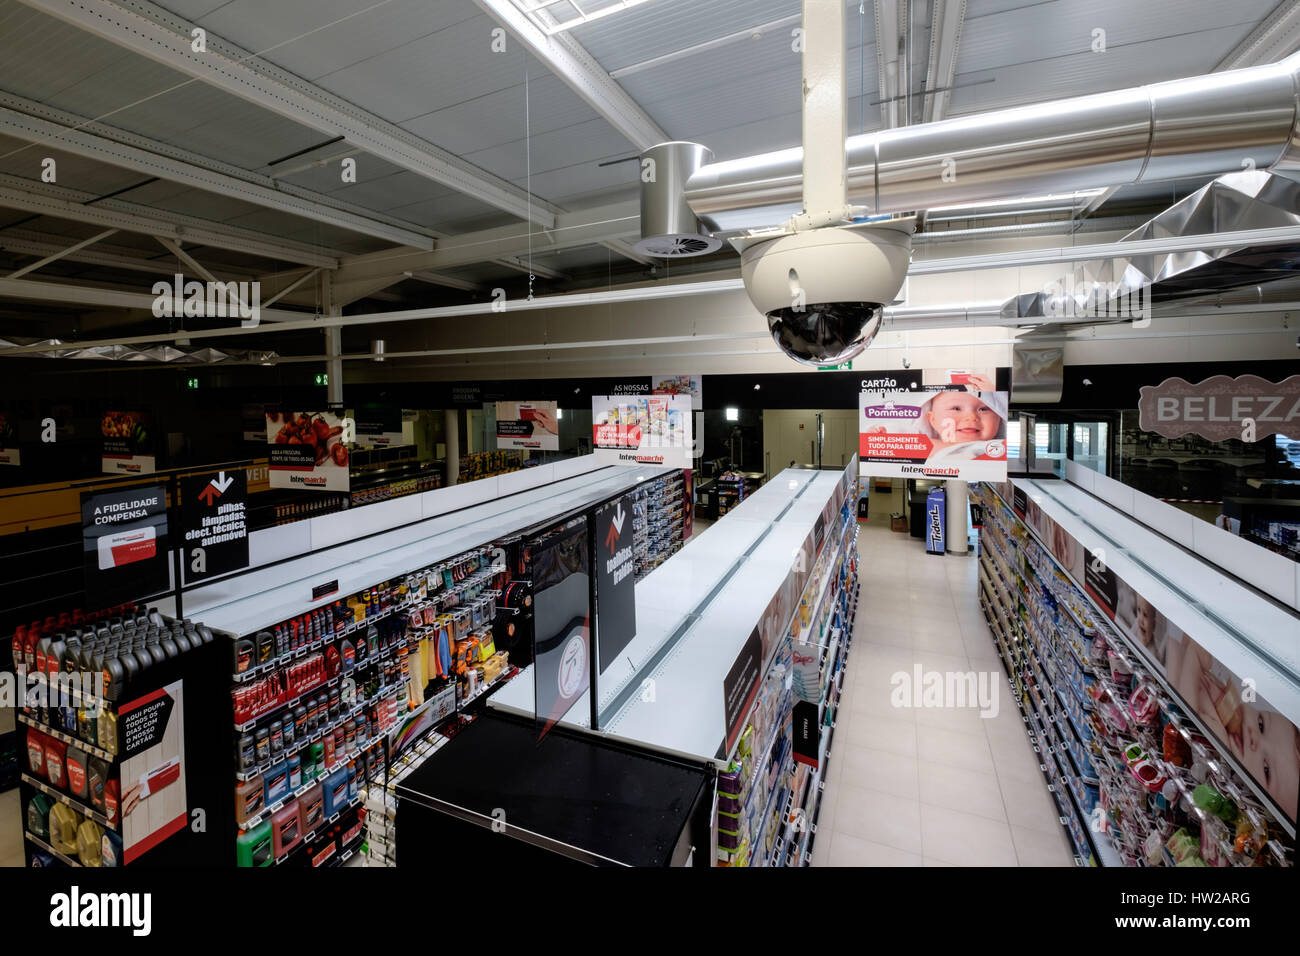 Security camera above supermarket aisles - Stock Image